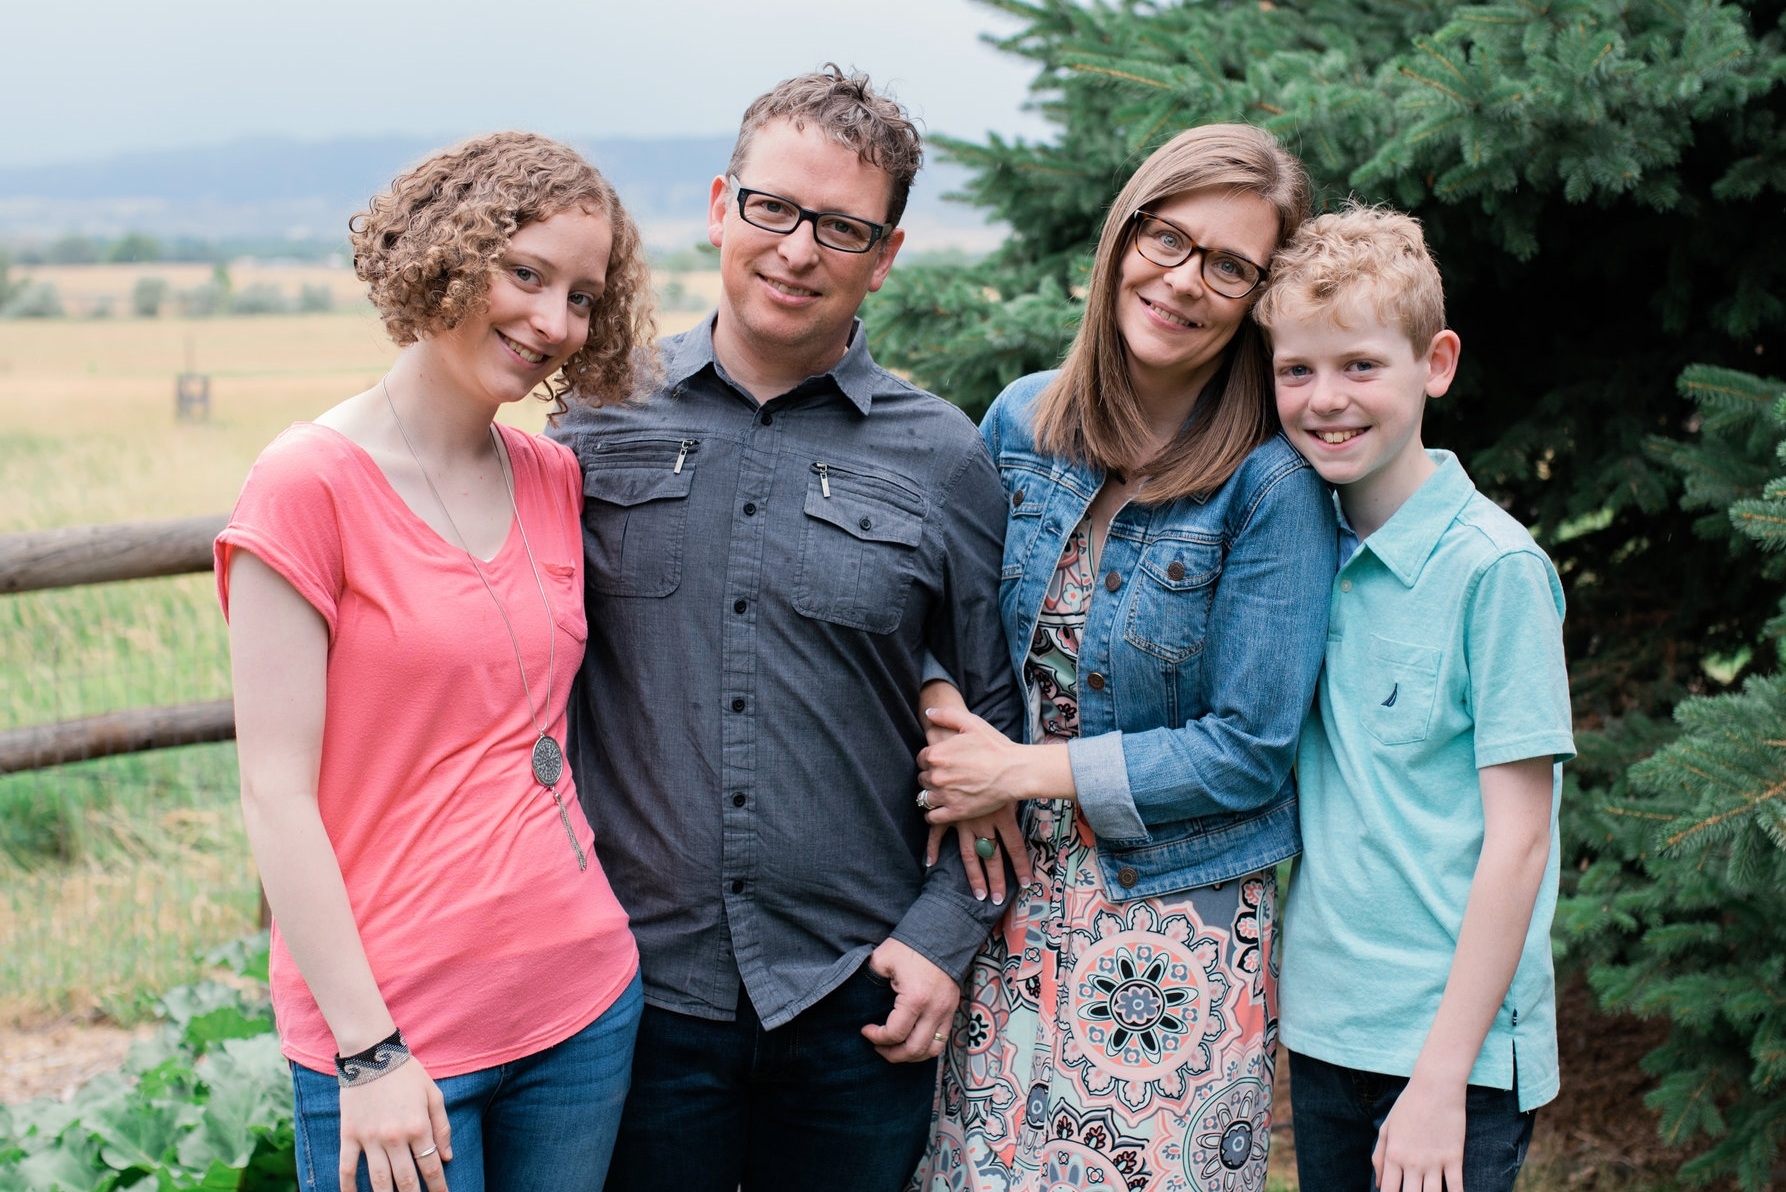 My amazing family: Hannah (the greatest 17yo daughter a guy could imagine), Kristi (Best. Wife. Ever.), me, & Noah (my awesome 12yo son).